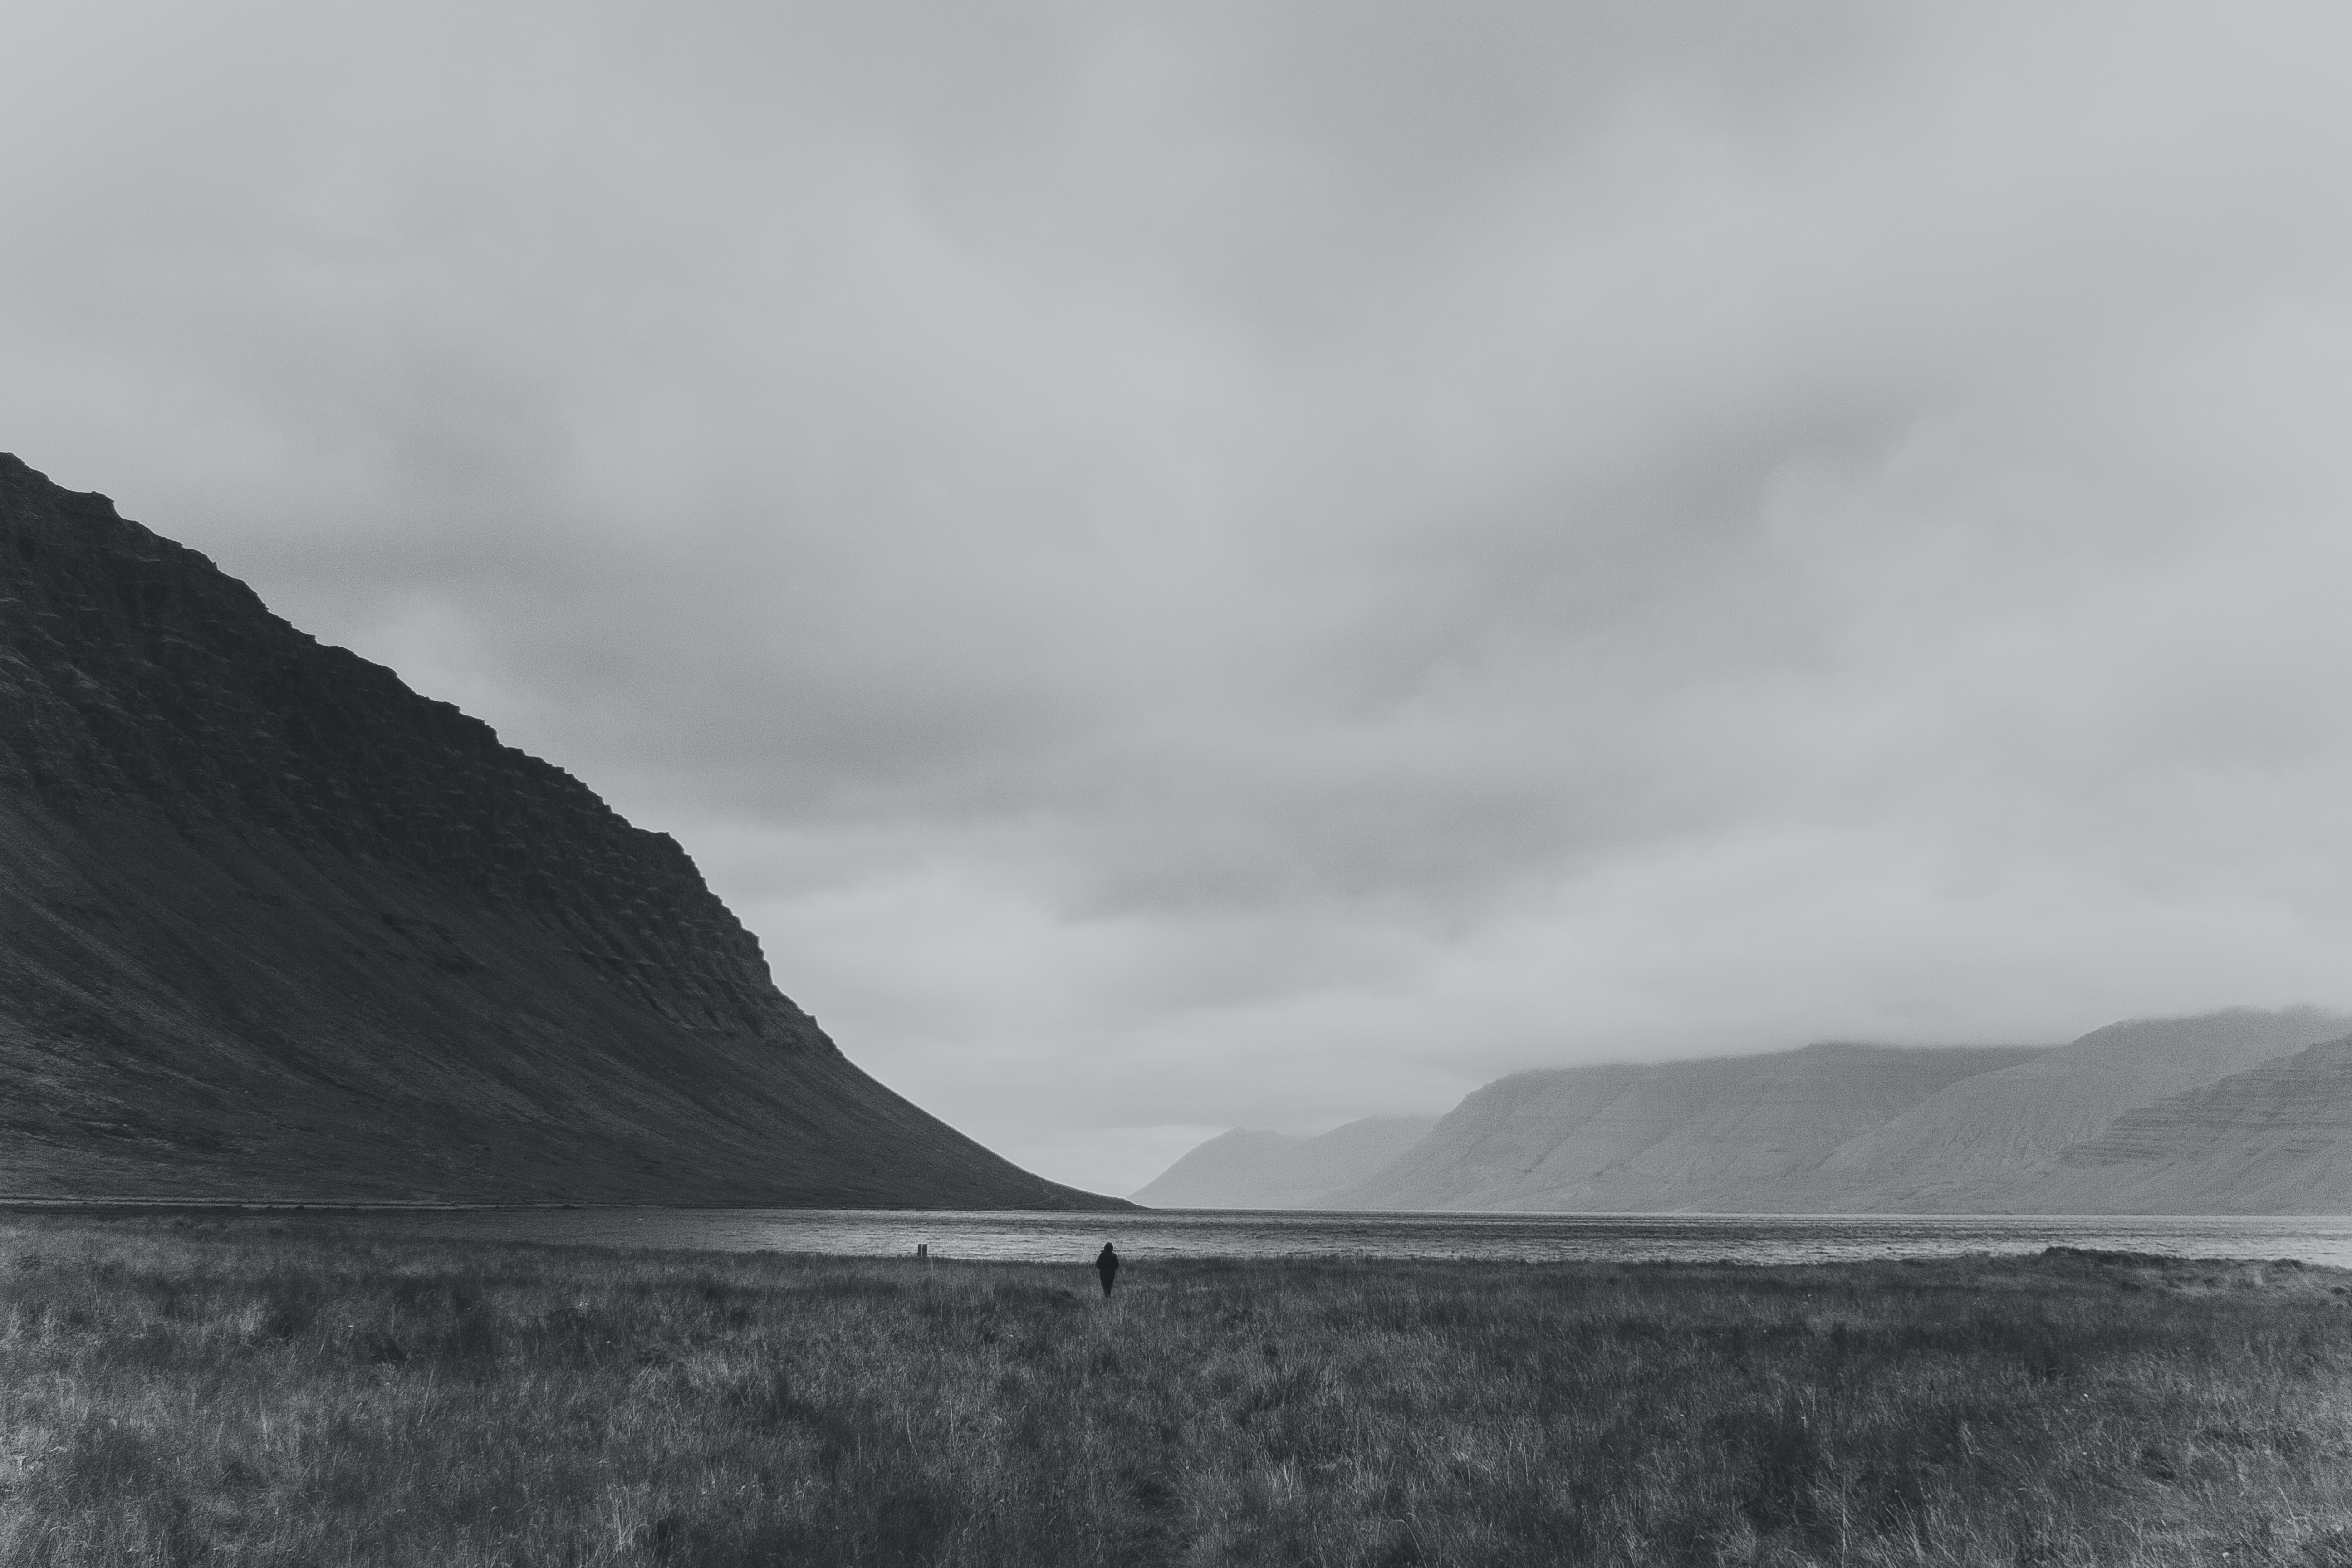 grayscale photo of person standing on open field under sky